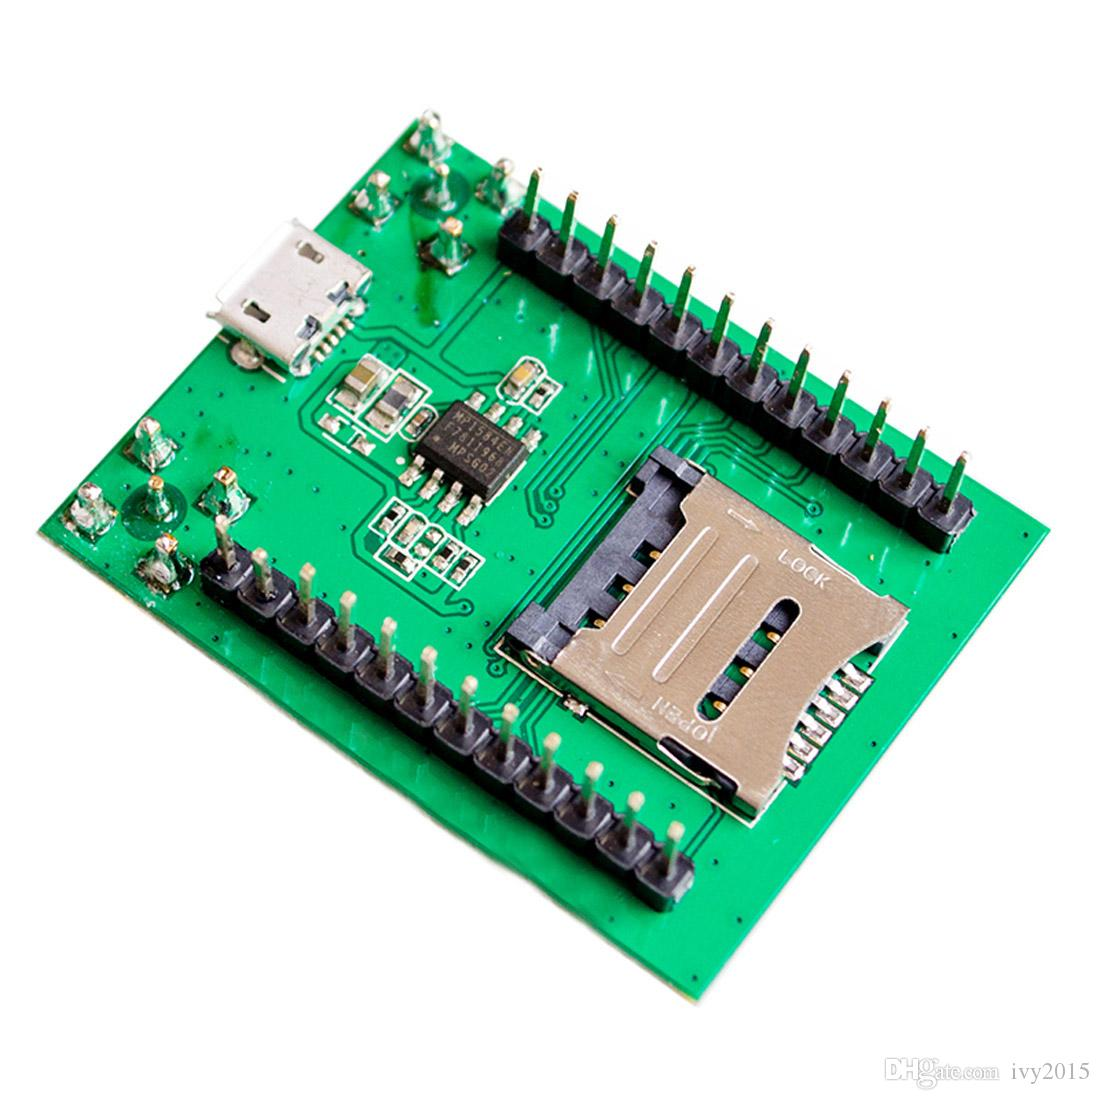 2019 Wholesale Price A7 GSM/GPRS Development Board A7 Adapter Quad Band SMS  Voice Data Transfer Antenna Module High Quality From Ivy2015, $11 05 |